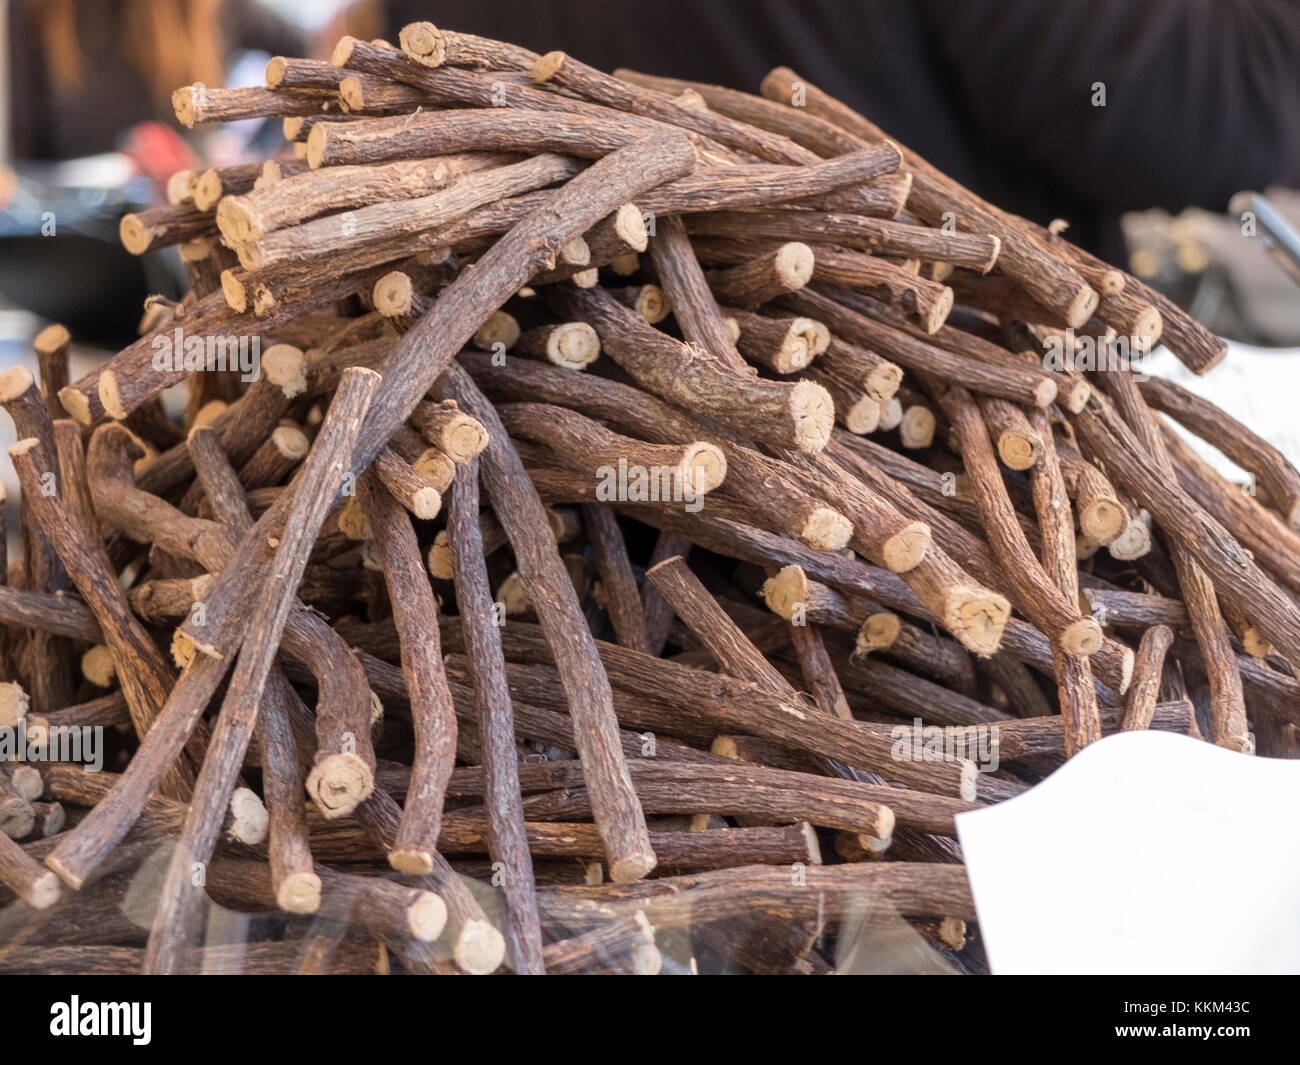 Close up with a bunch of raw licorice root sticks. - Stock Image